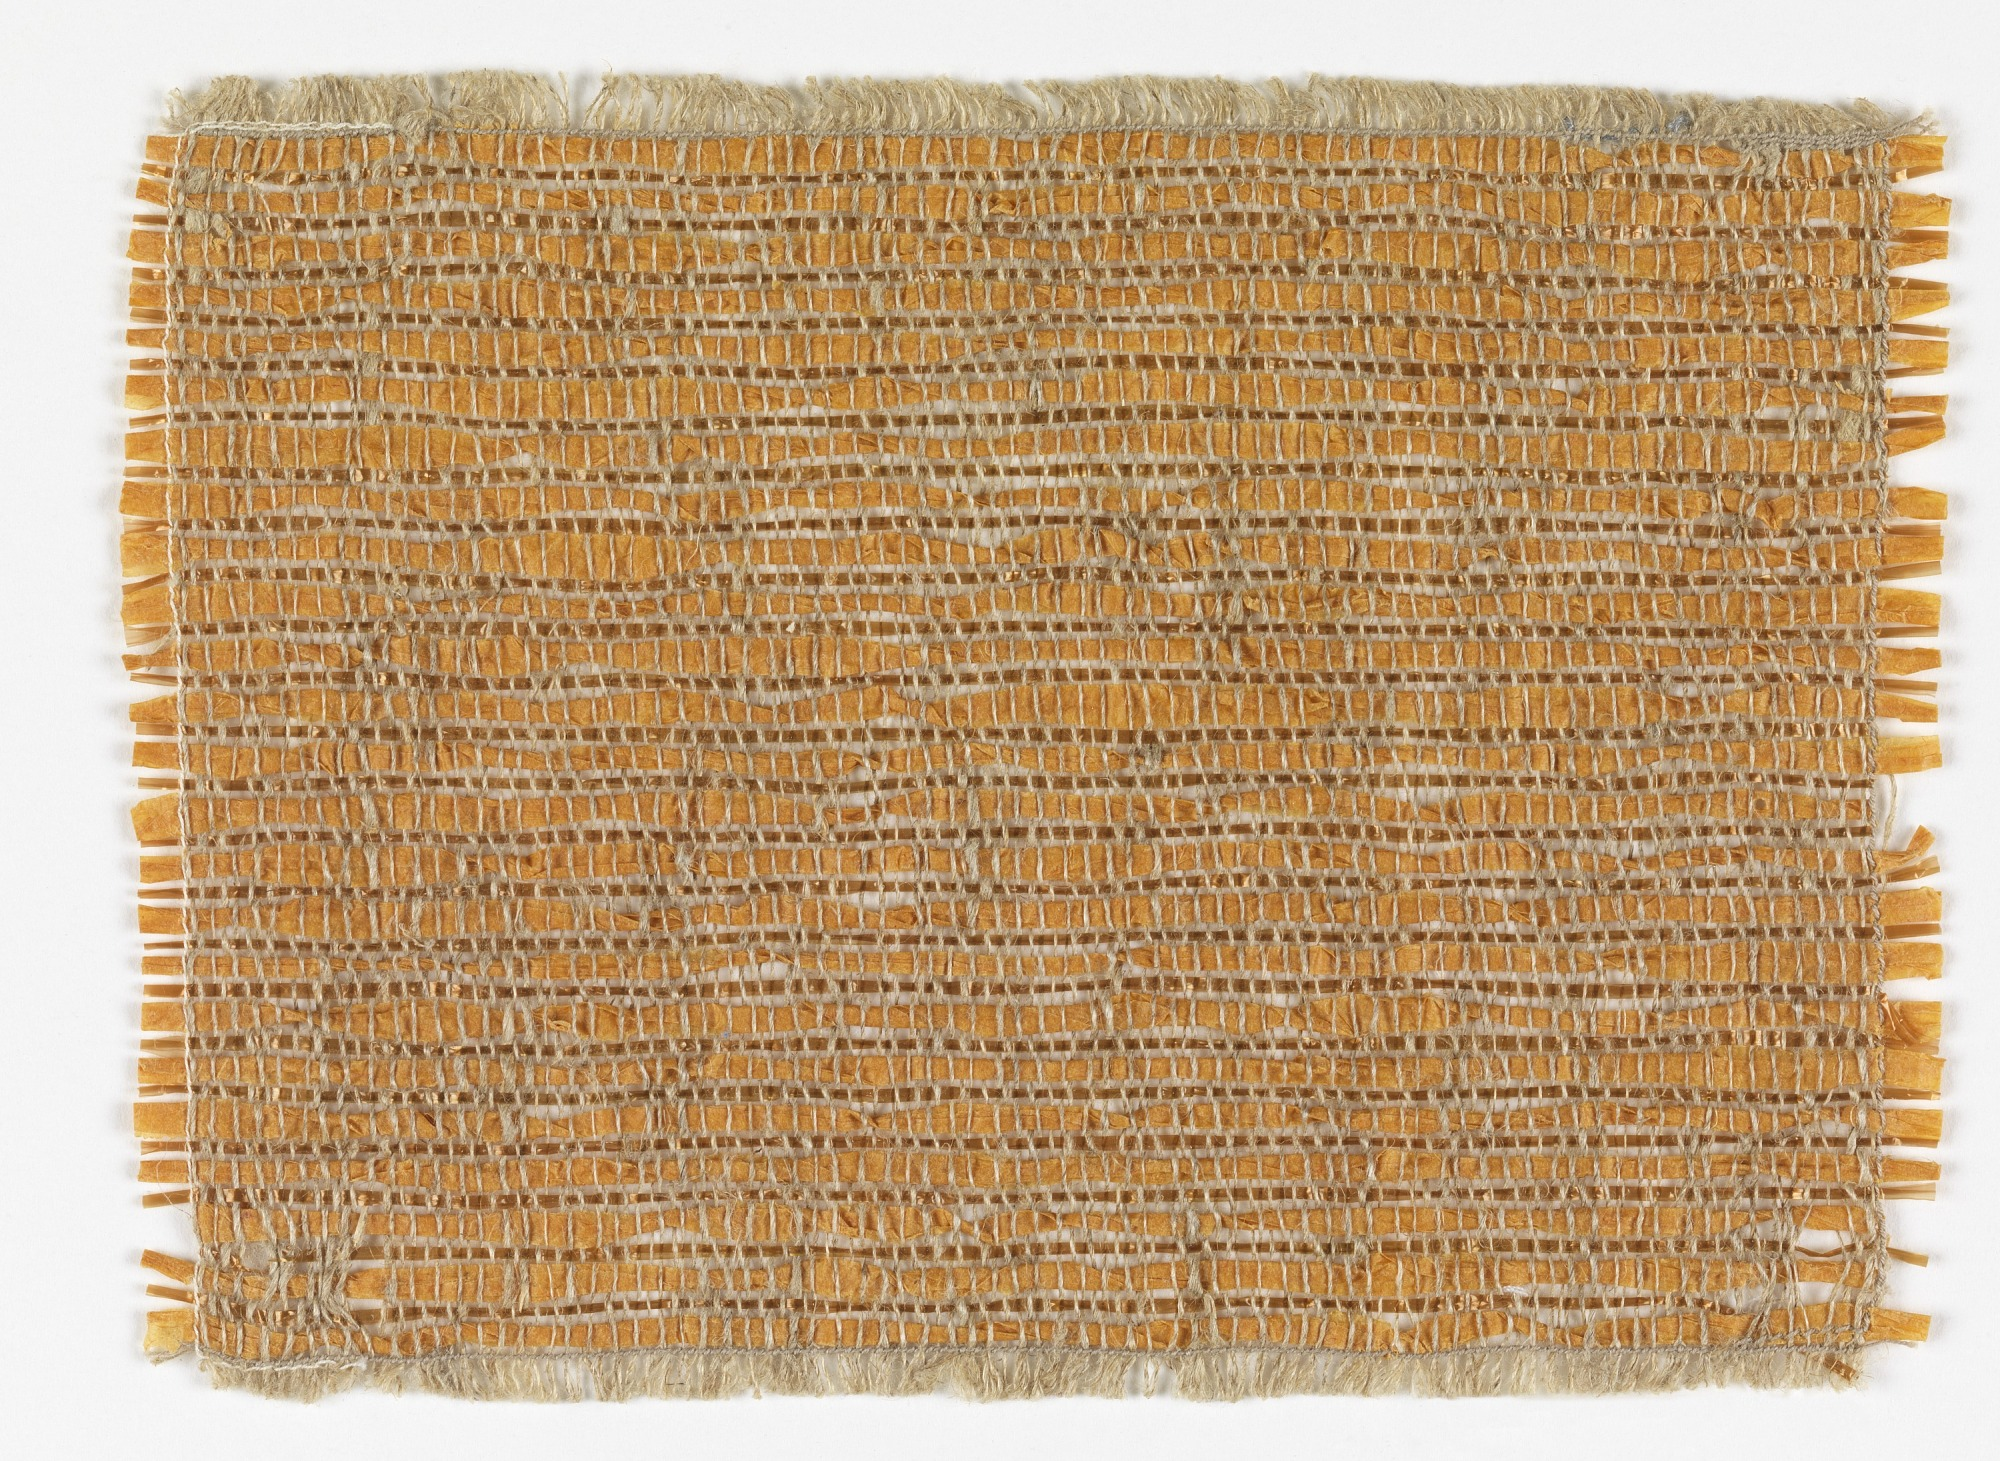 Handwoven sample for a wall covering